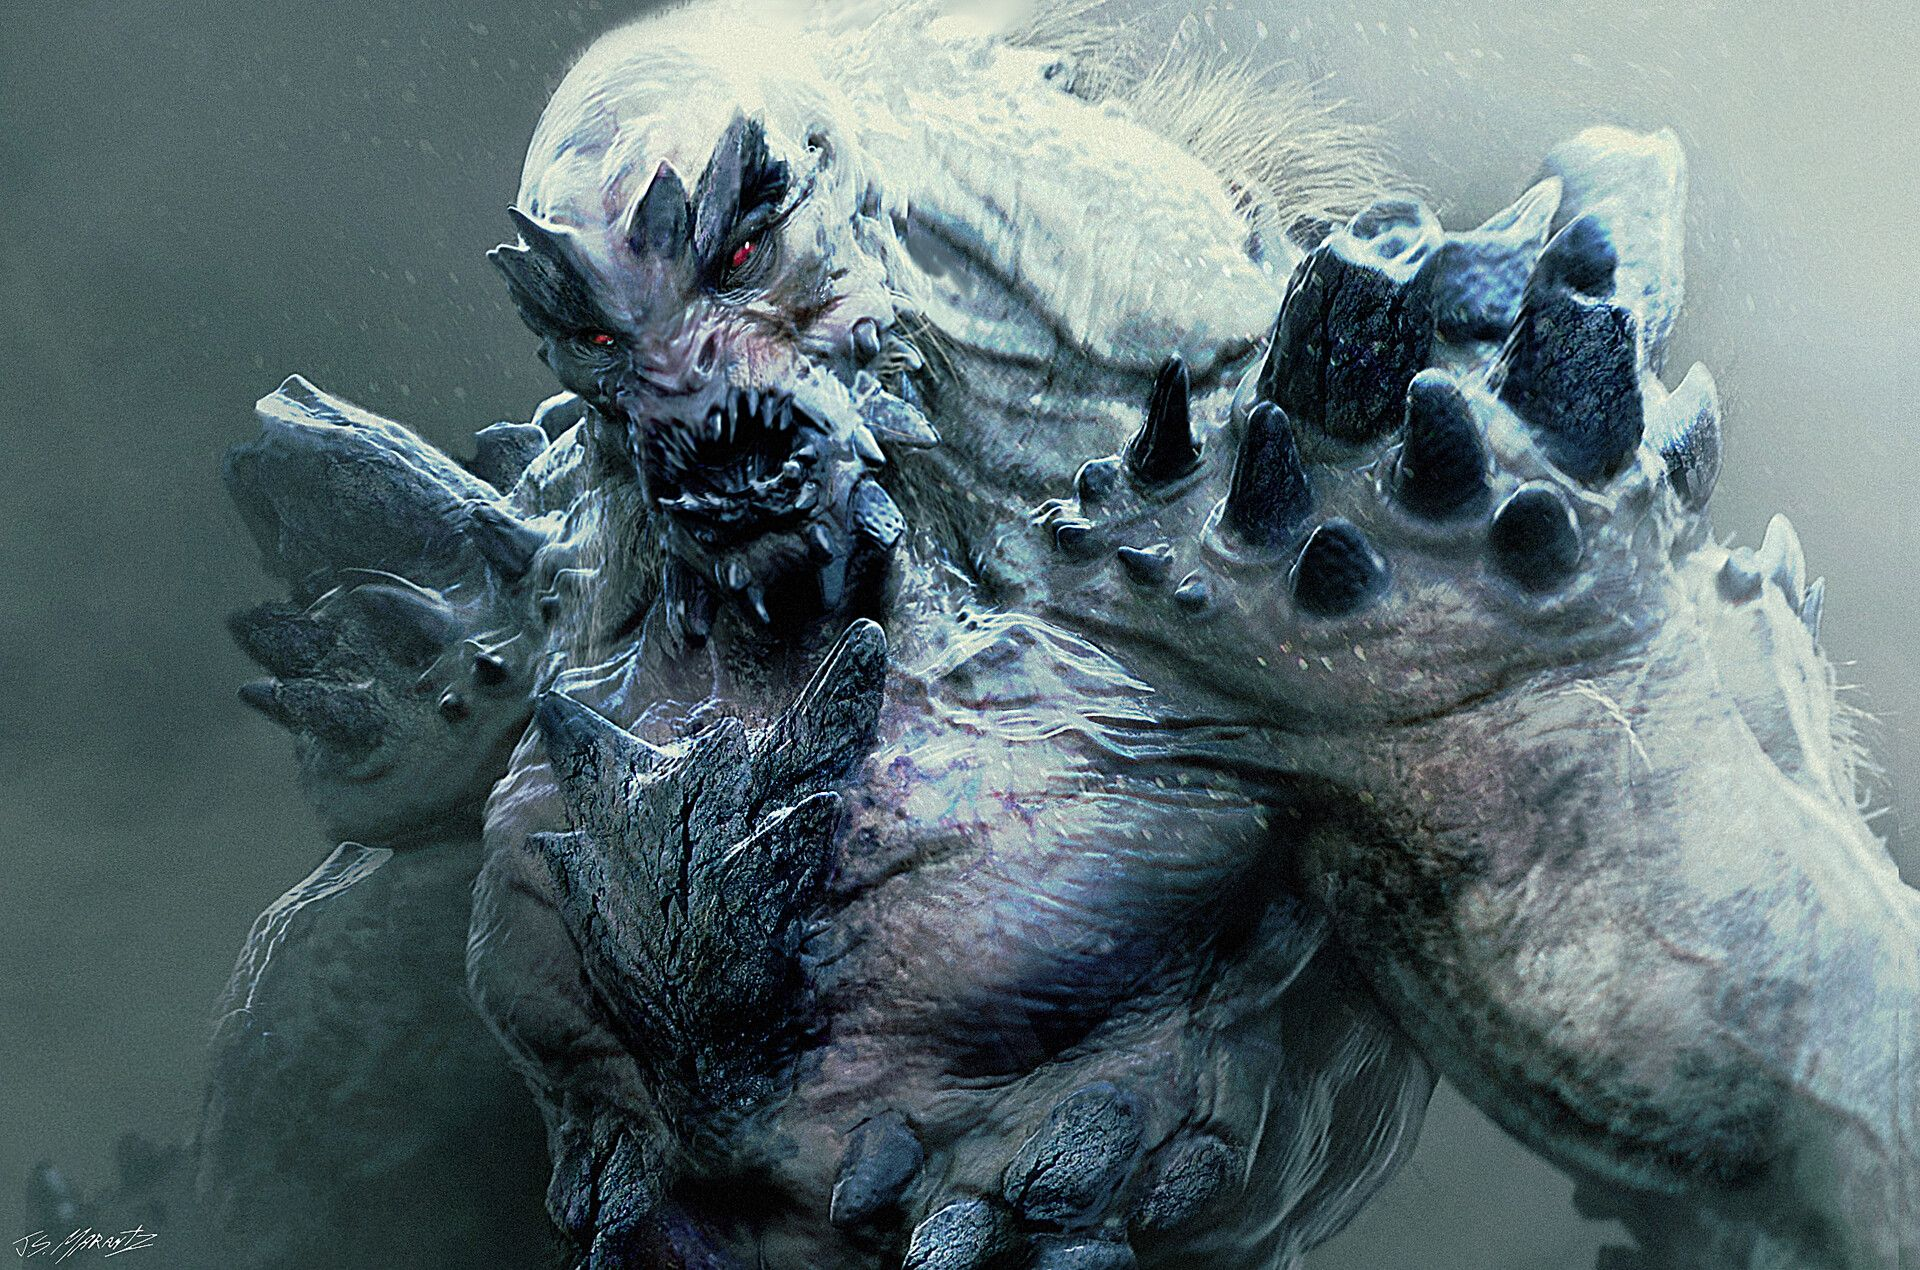 ArtStation - DOOMSDAY Conceptart for Batman vs. Superman, Jerad Marantz | Superman doomsday, Batman vs, Doomsday